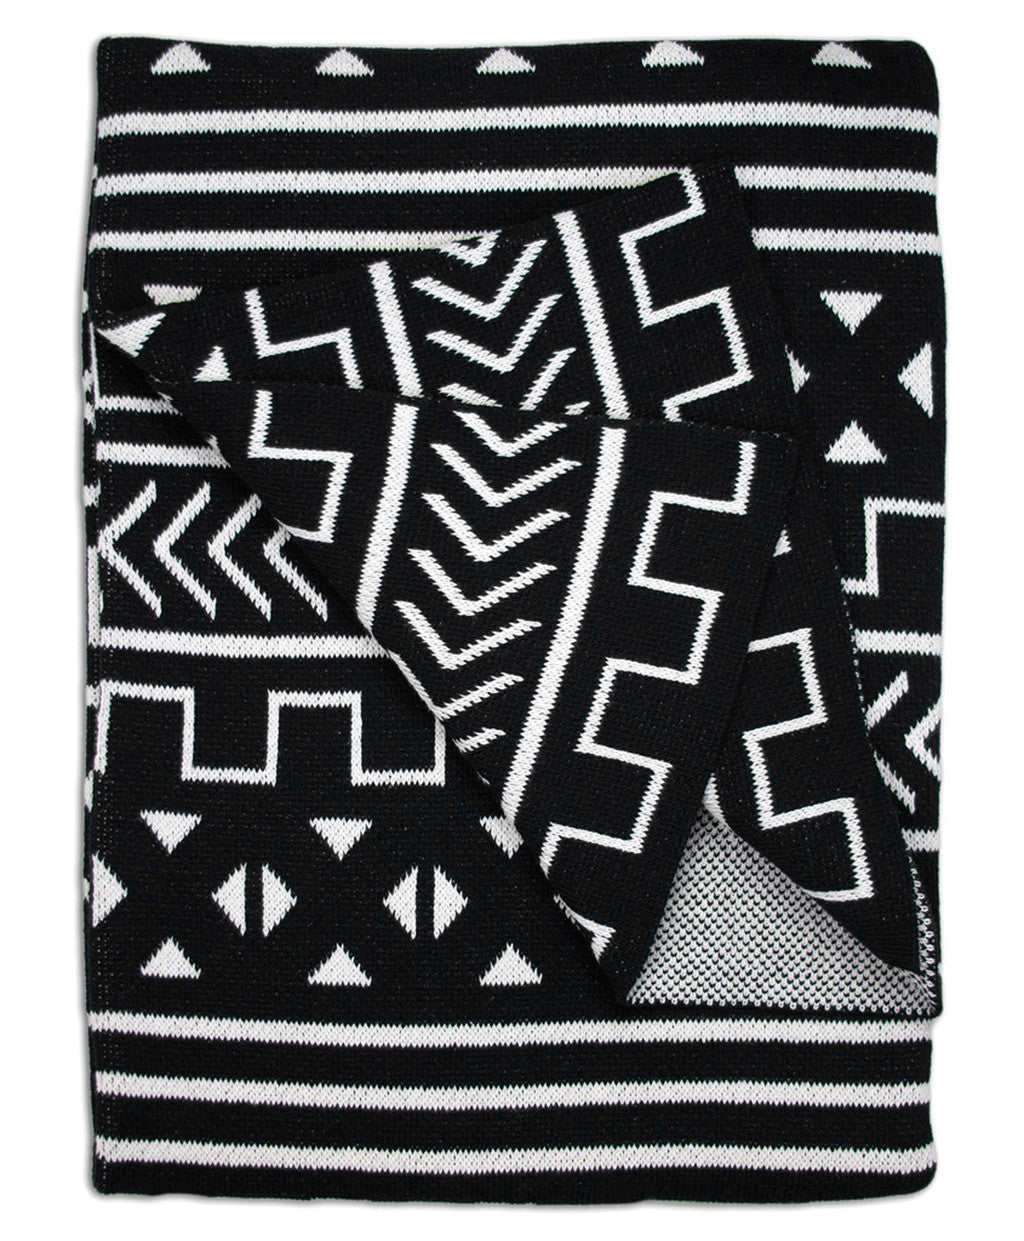 Black & White Mali Patterned Throw Blanket | Savannah Hayes